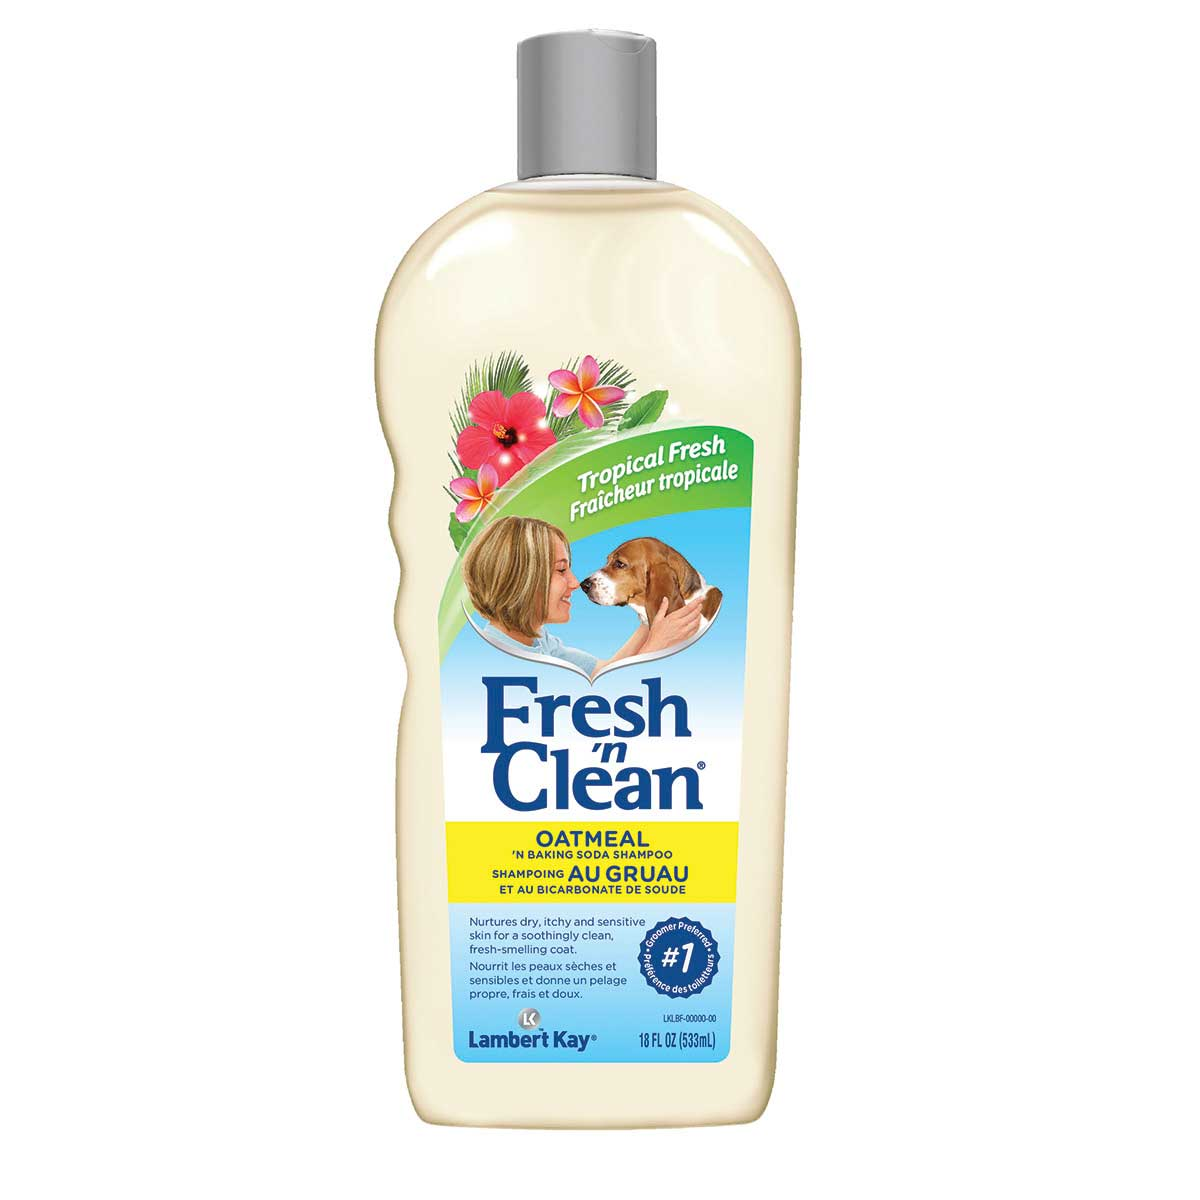 Fresh 'n Clean Oatmeal 'n Baking Soda Shampoo for Dogs Ready to Use18 oz